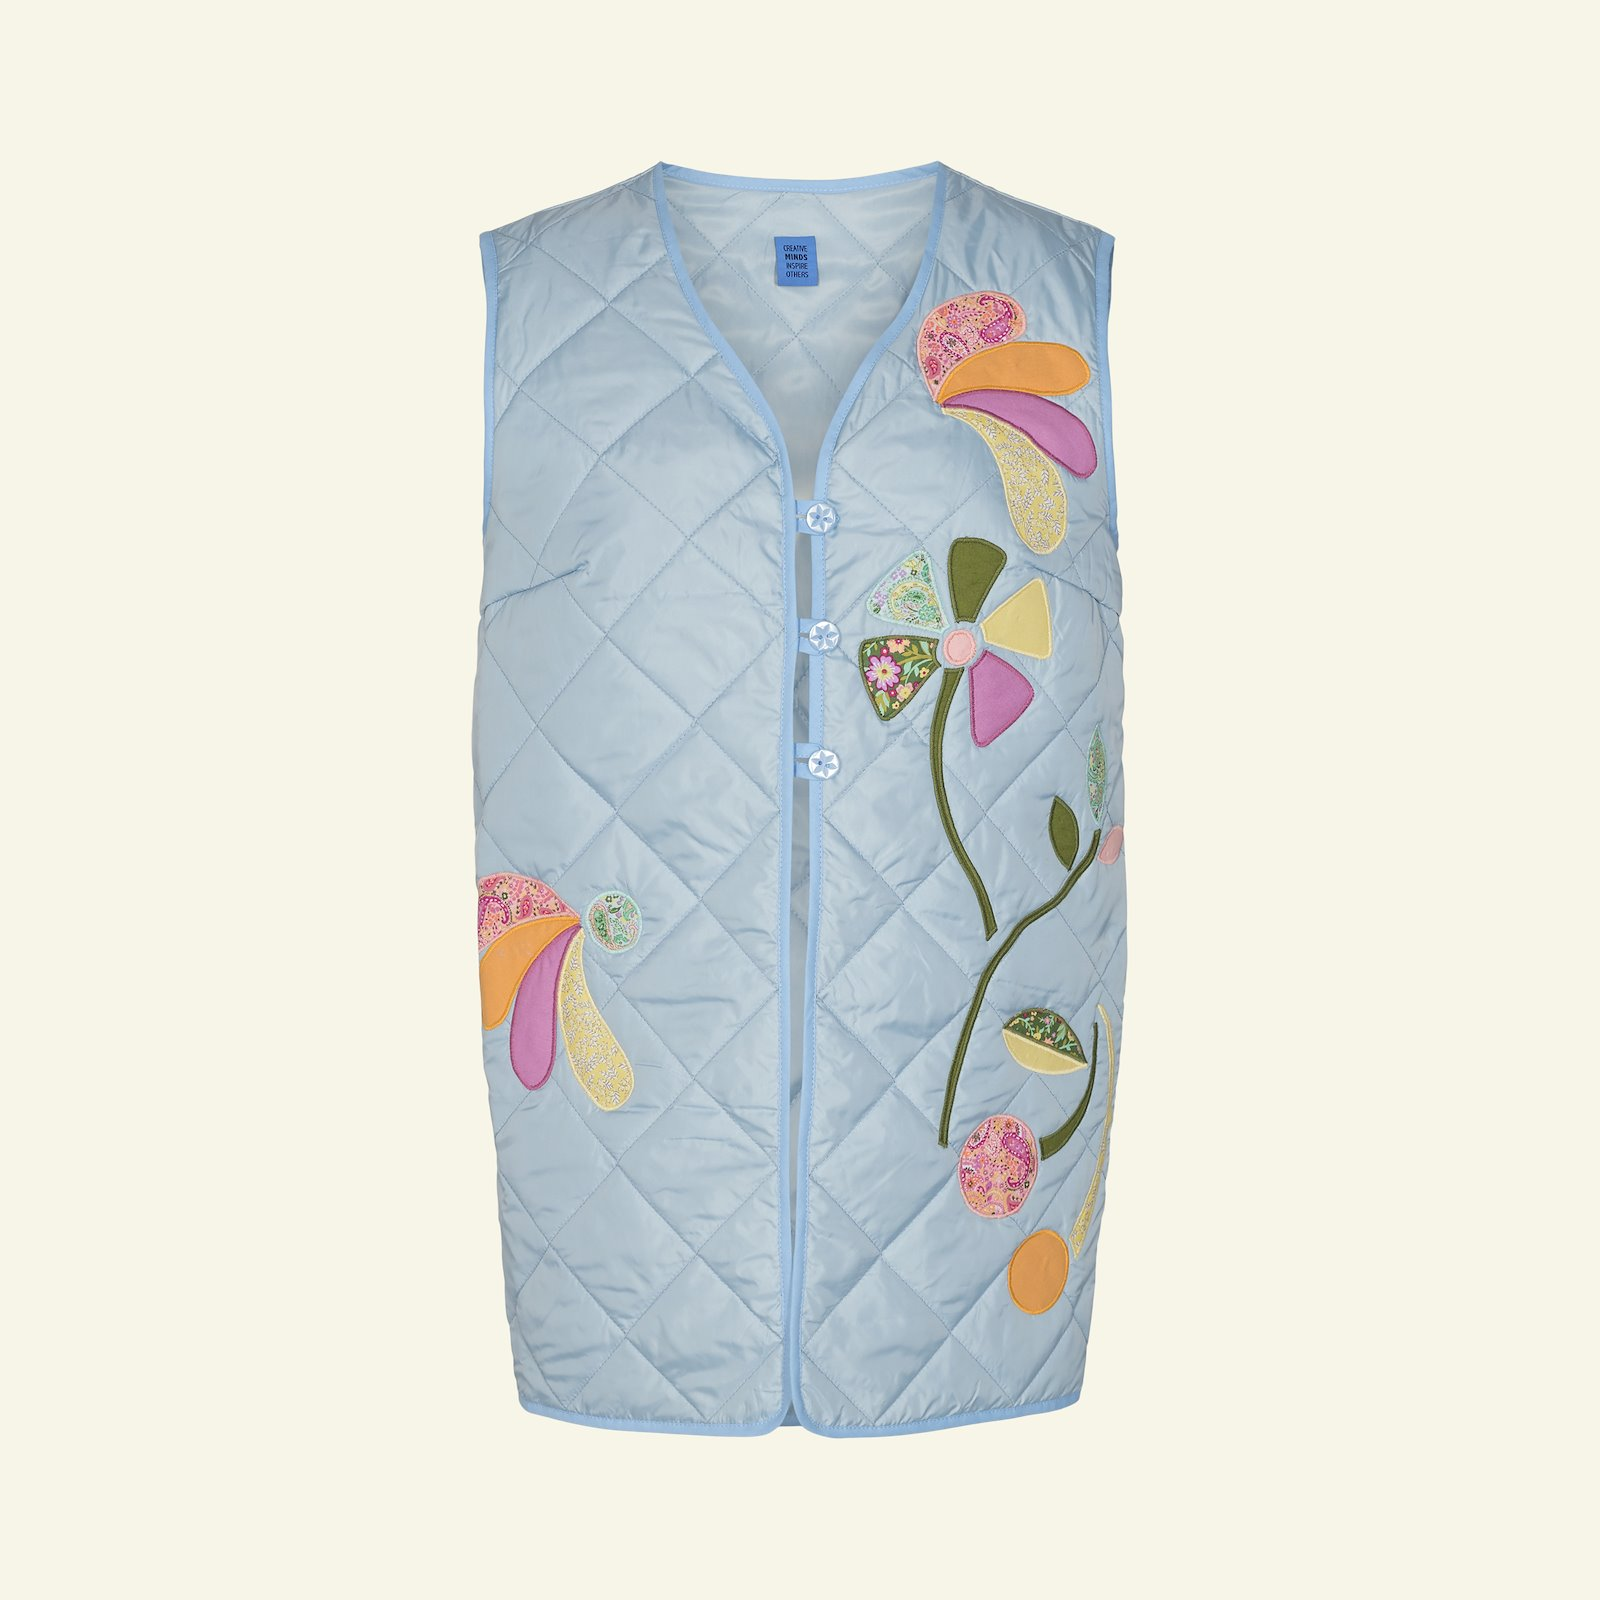 Quilted jacket and waistcoat p24047_920225_66019_33224_sskit